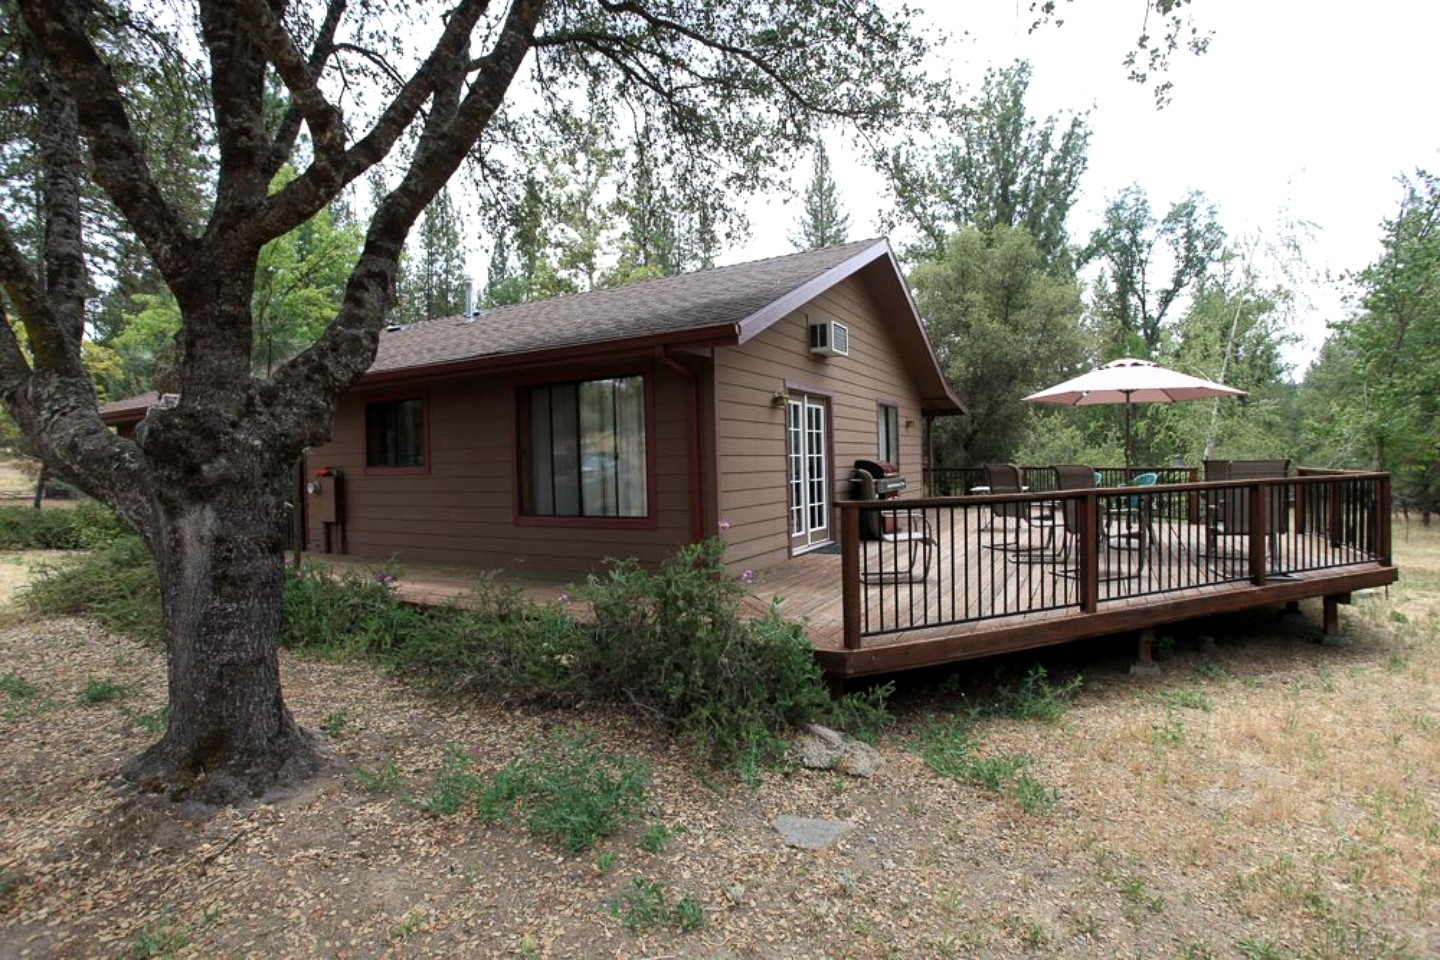 Pet friendly cabin in yosemite california for Yosemite national park cabin rentals